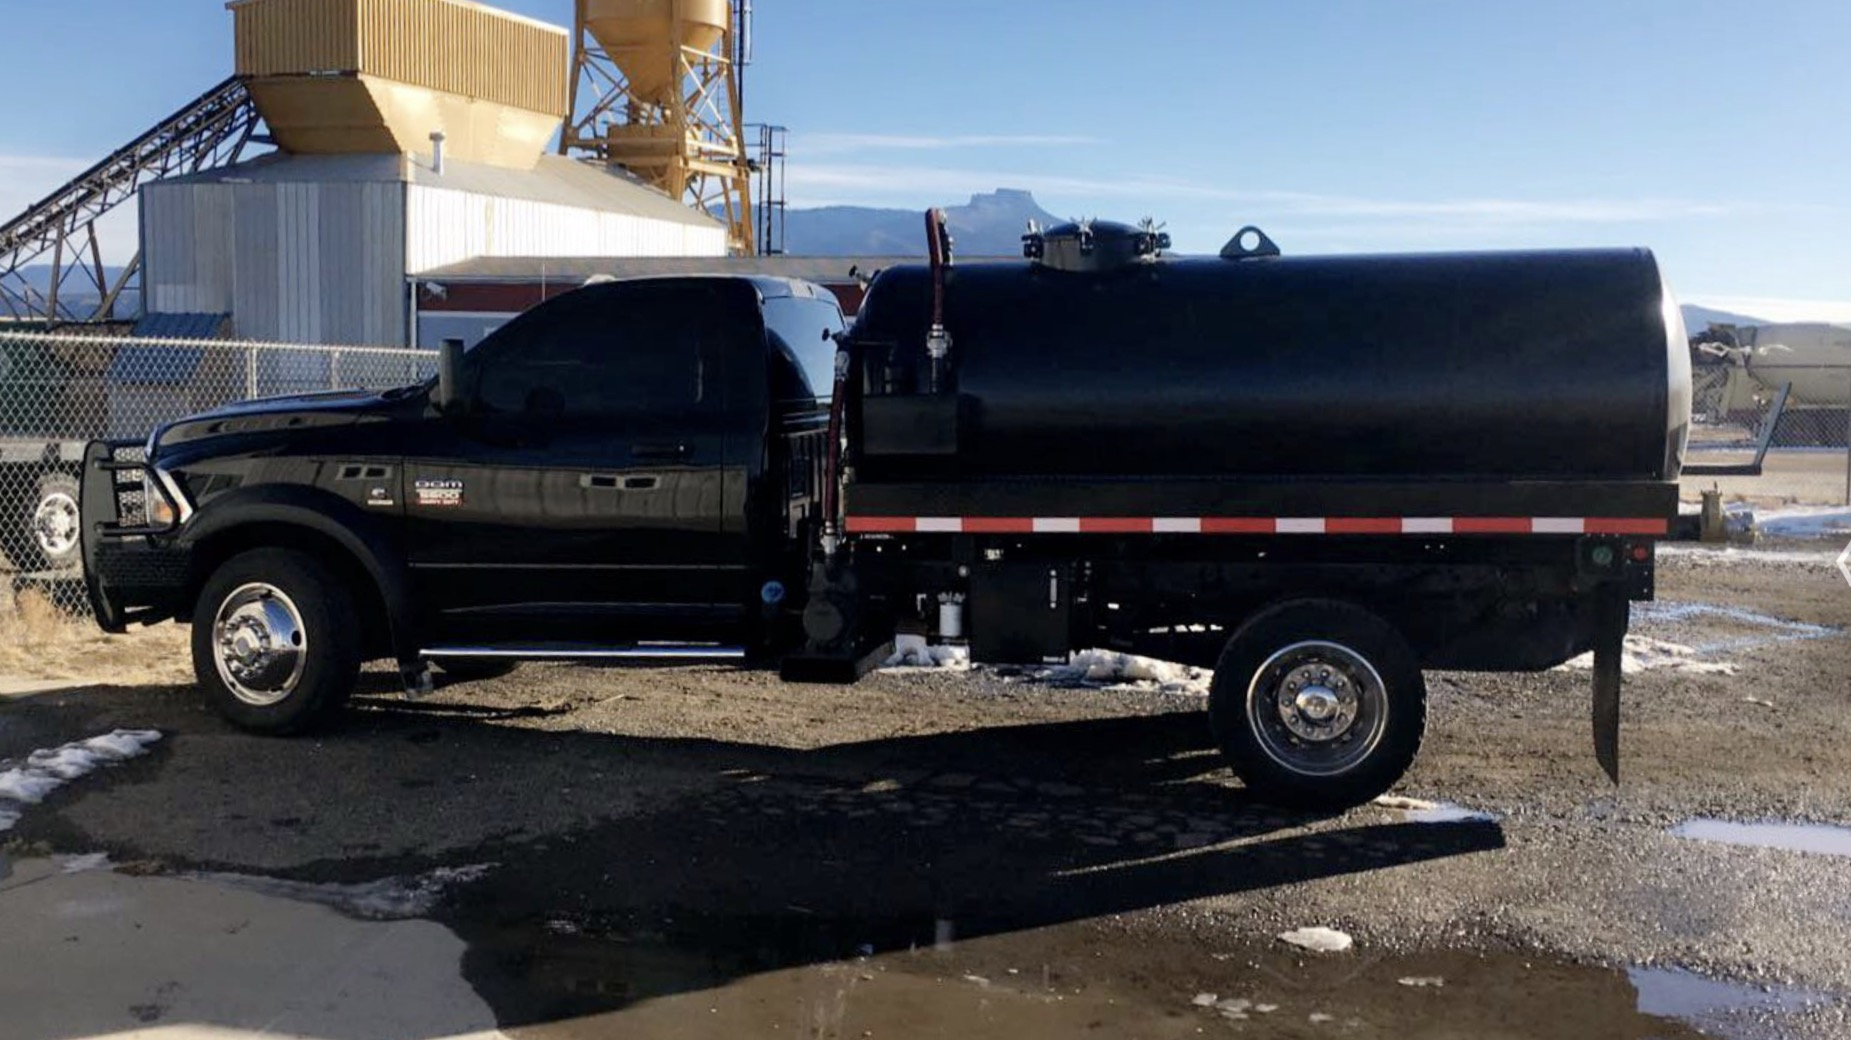 Dodge Ram 5500 For Sale >> 2012 Dodge Ram 5500 – New & Used Septic Trucks for sale